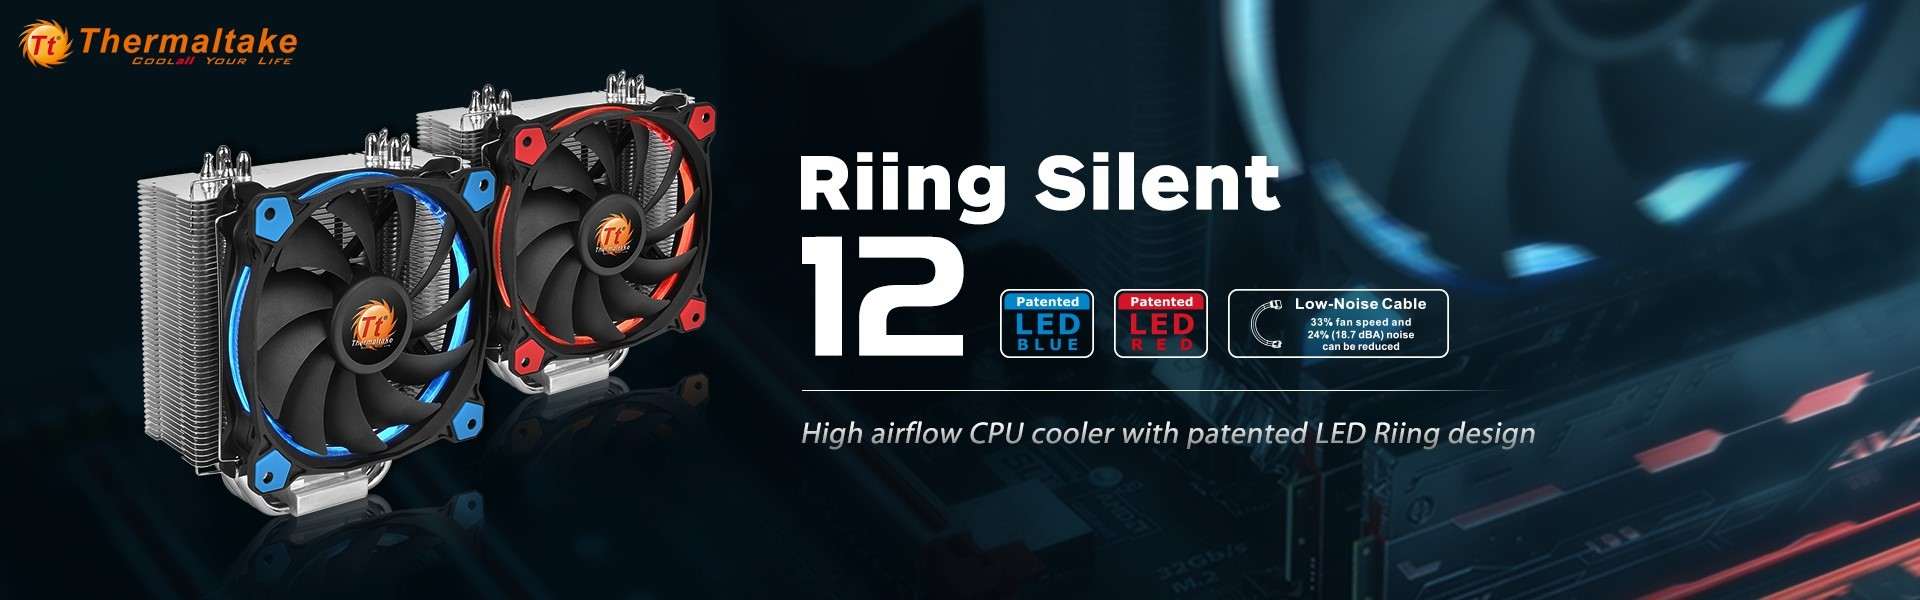 Ill Launch Feed Illgaming Psu Pure 400w Ready 6pin Vga Thermaltake India Launches The Latest Riing Silent 12 Cpu Cooler